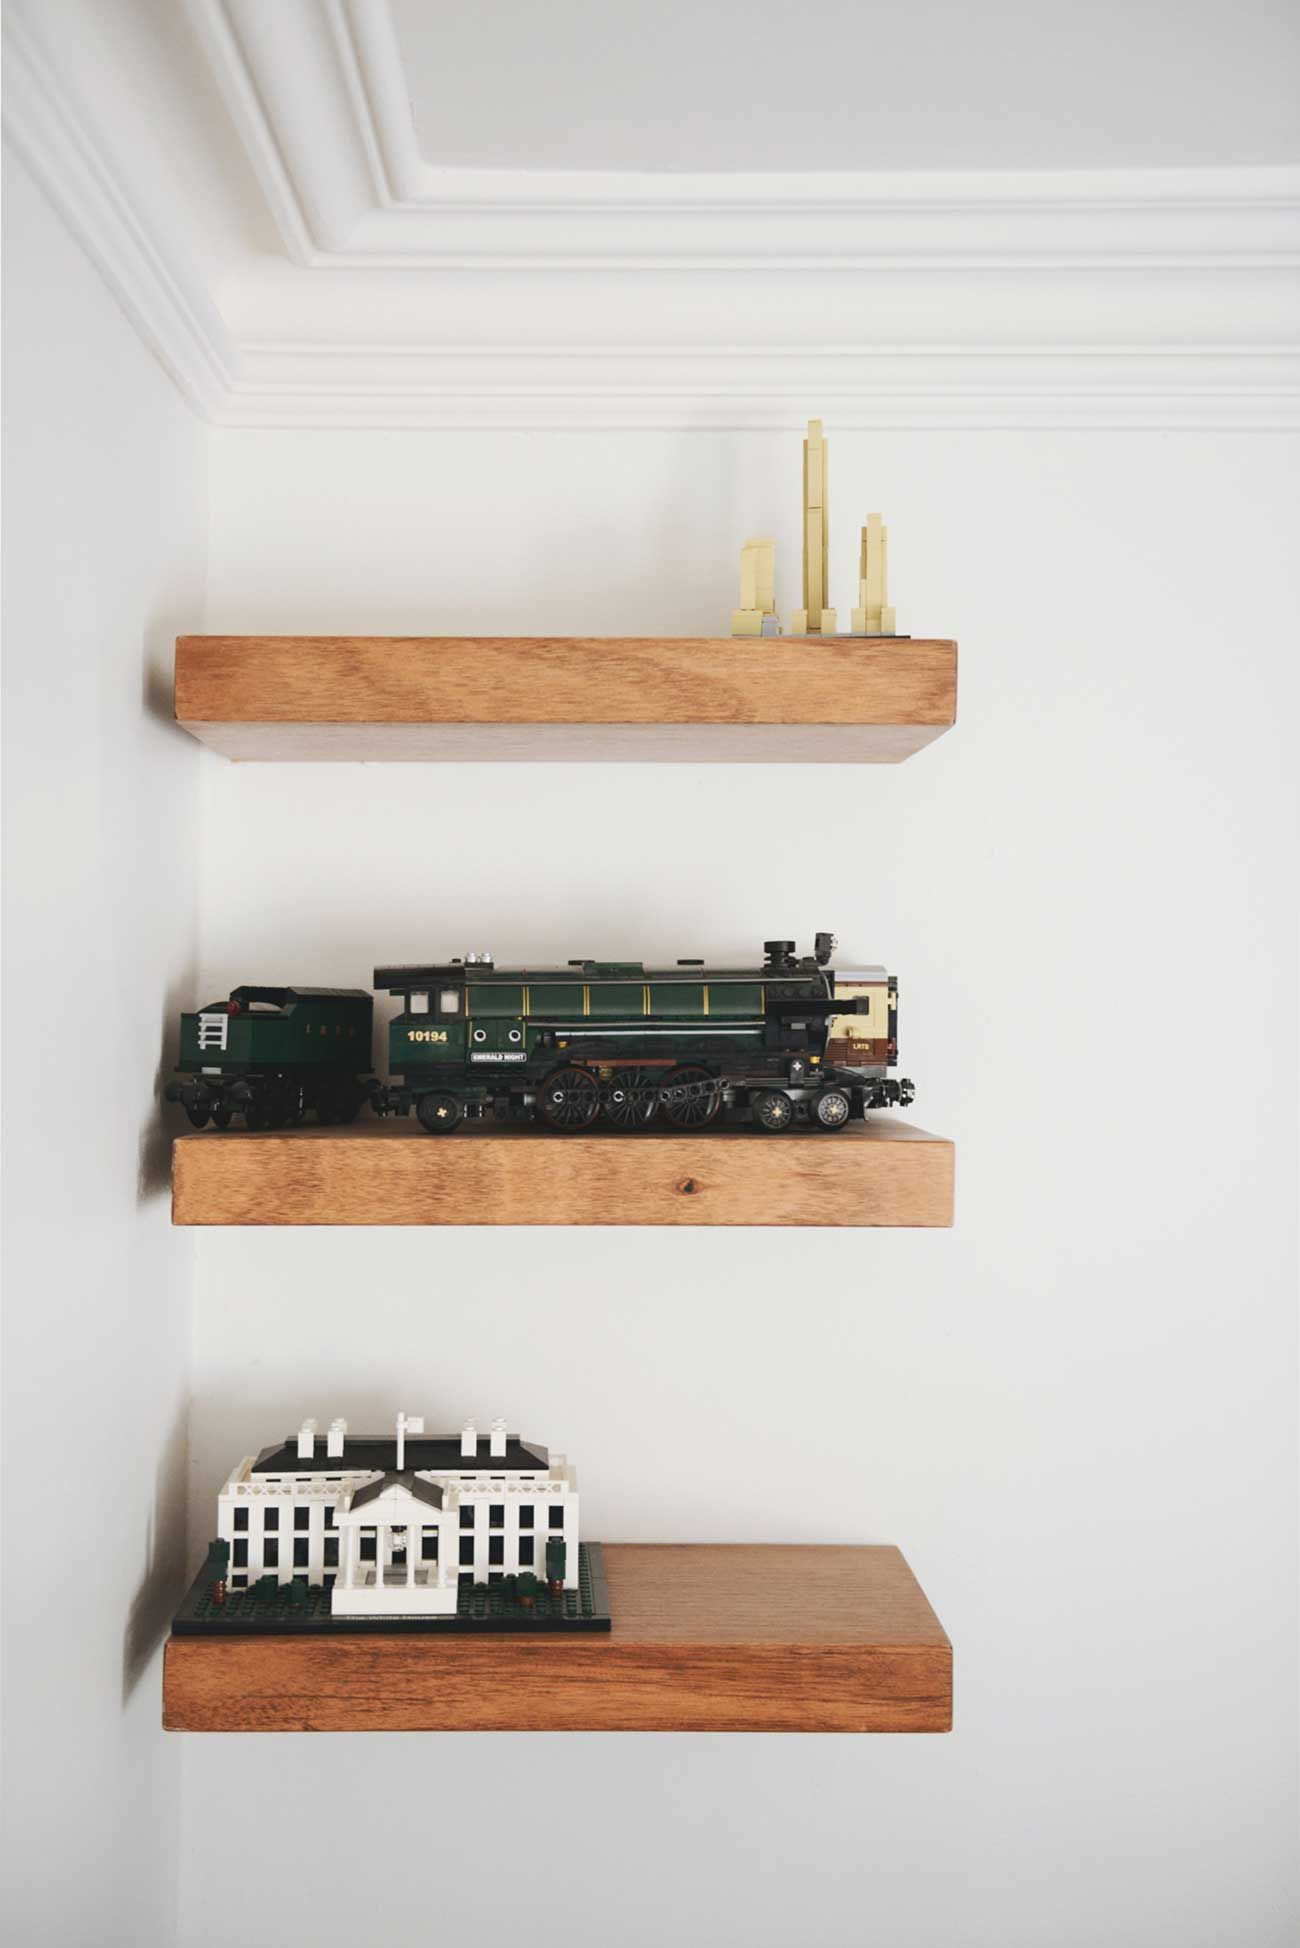 Built-in shelves.